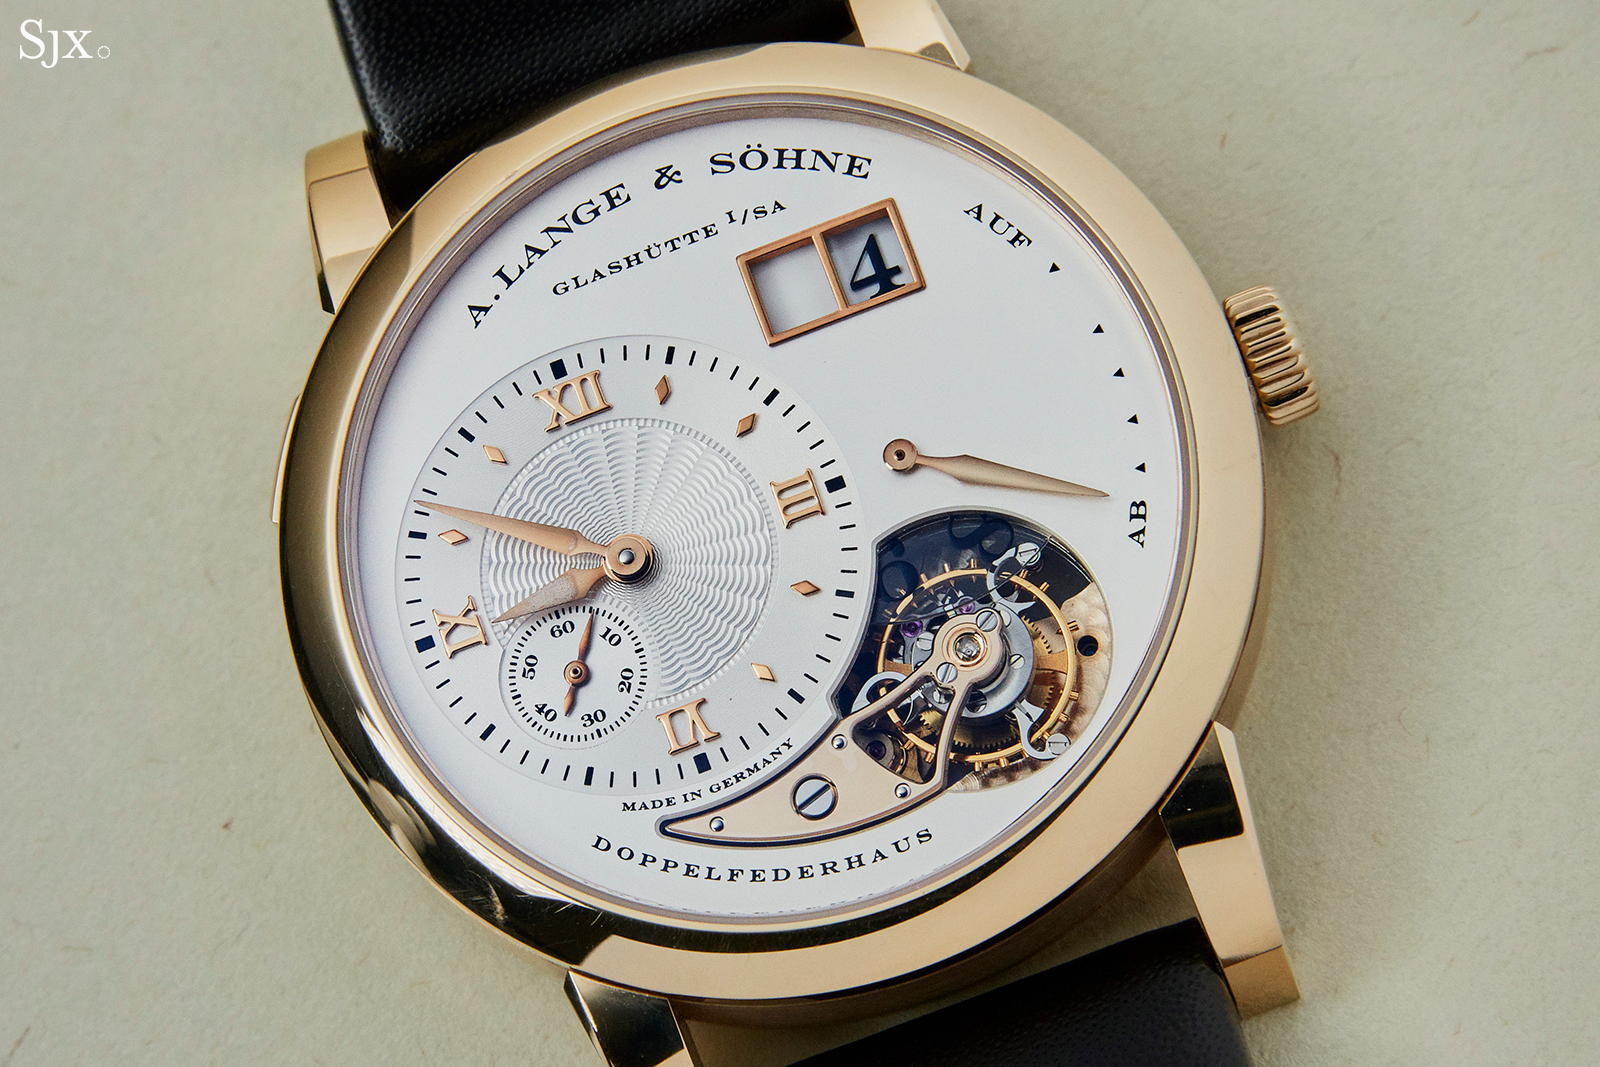 A Lange & Söhne Lange 1 Tourbillon in Honey Gold 1